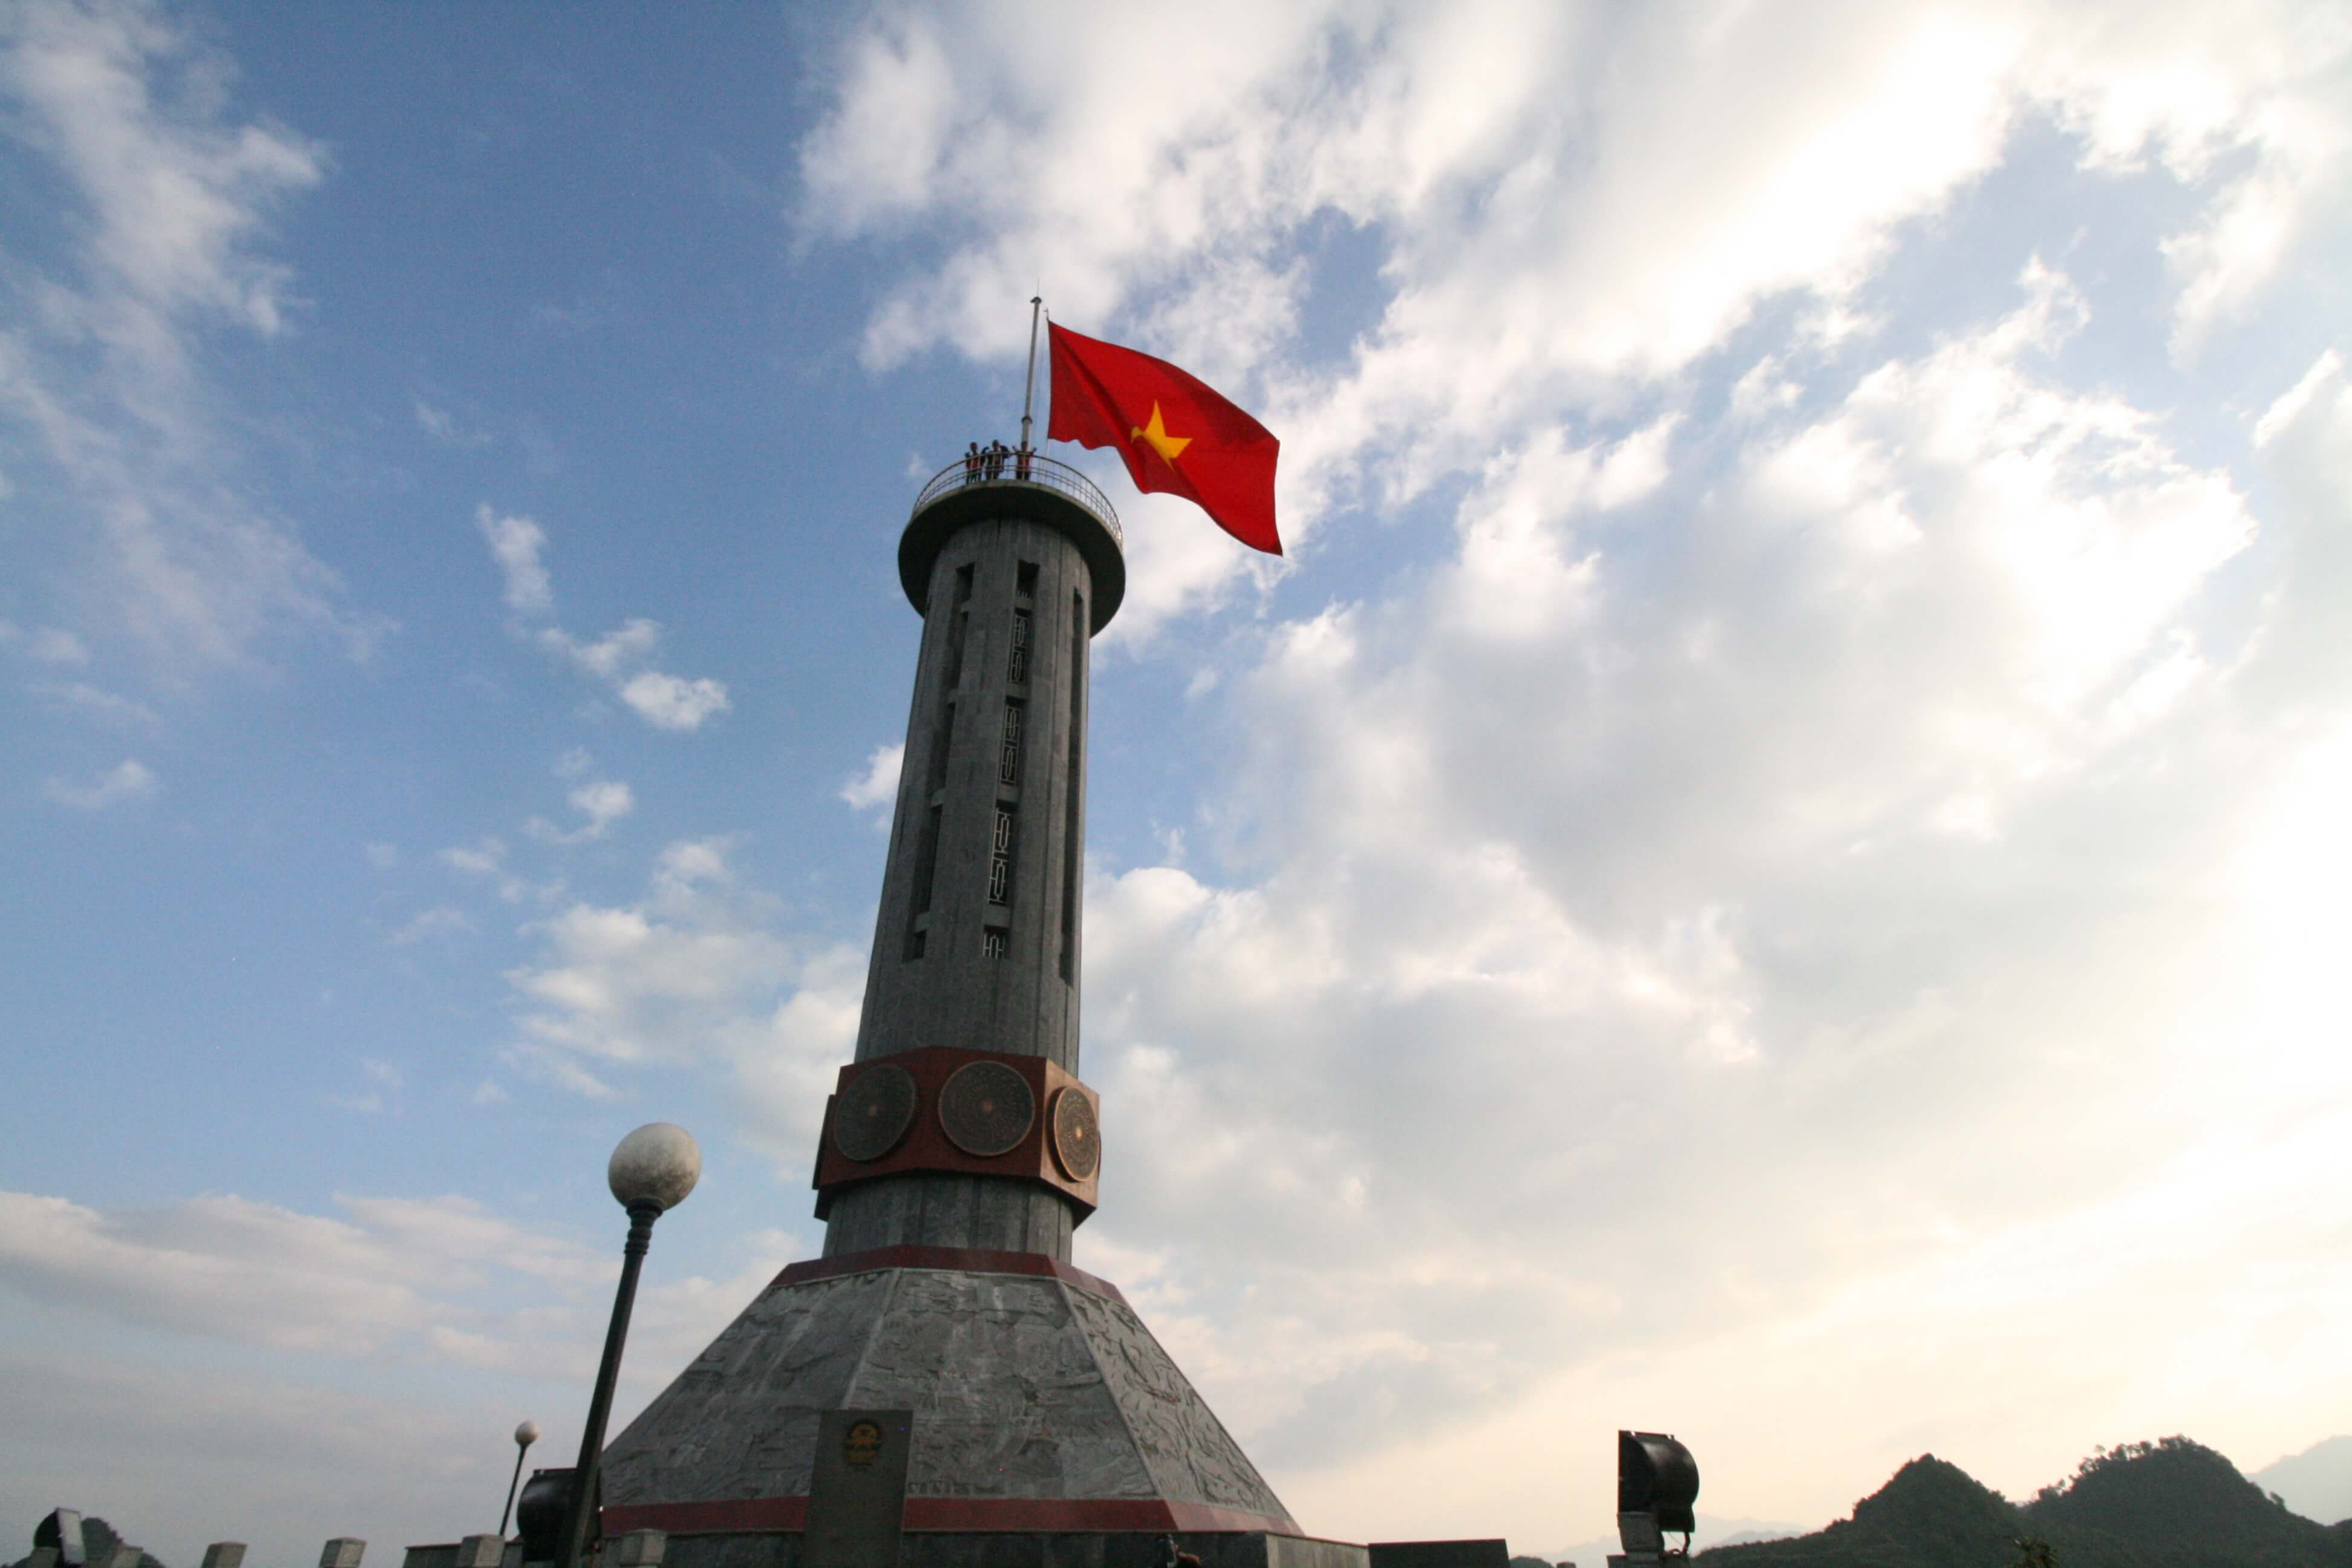 Lung Cu flag tower, the northernmost point of Vietnam